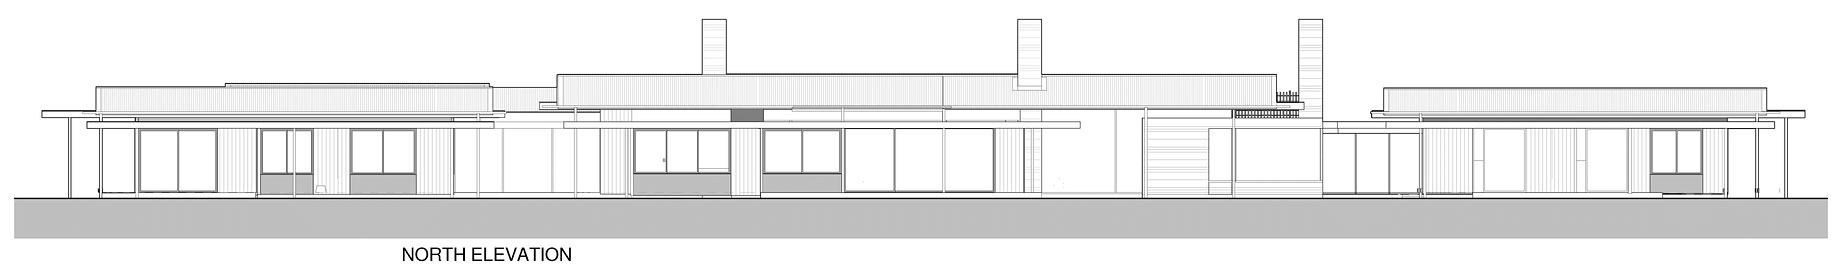 North Elevation, Wairau Valley House in Rapaura, New Zealand by Parsonson Architects